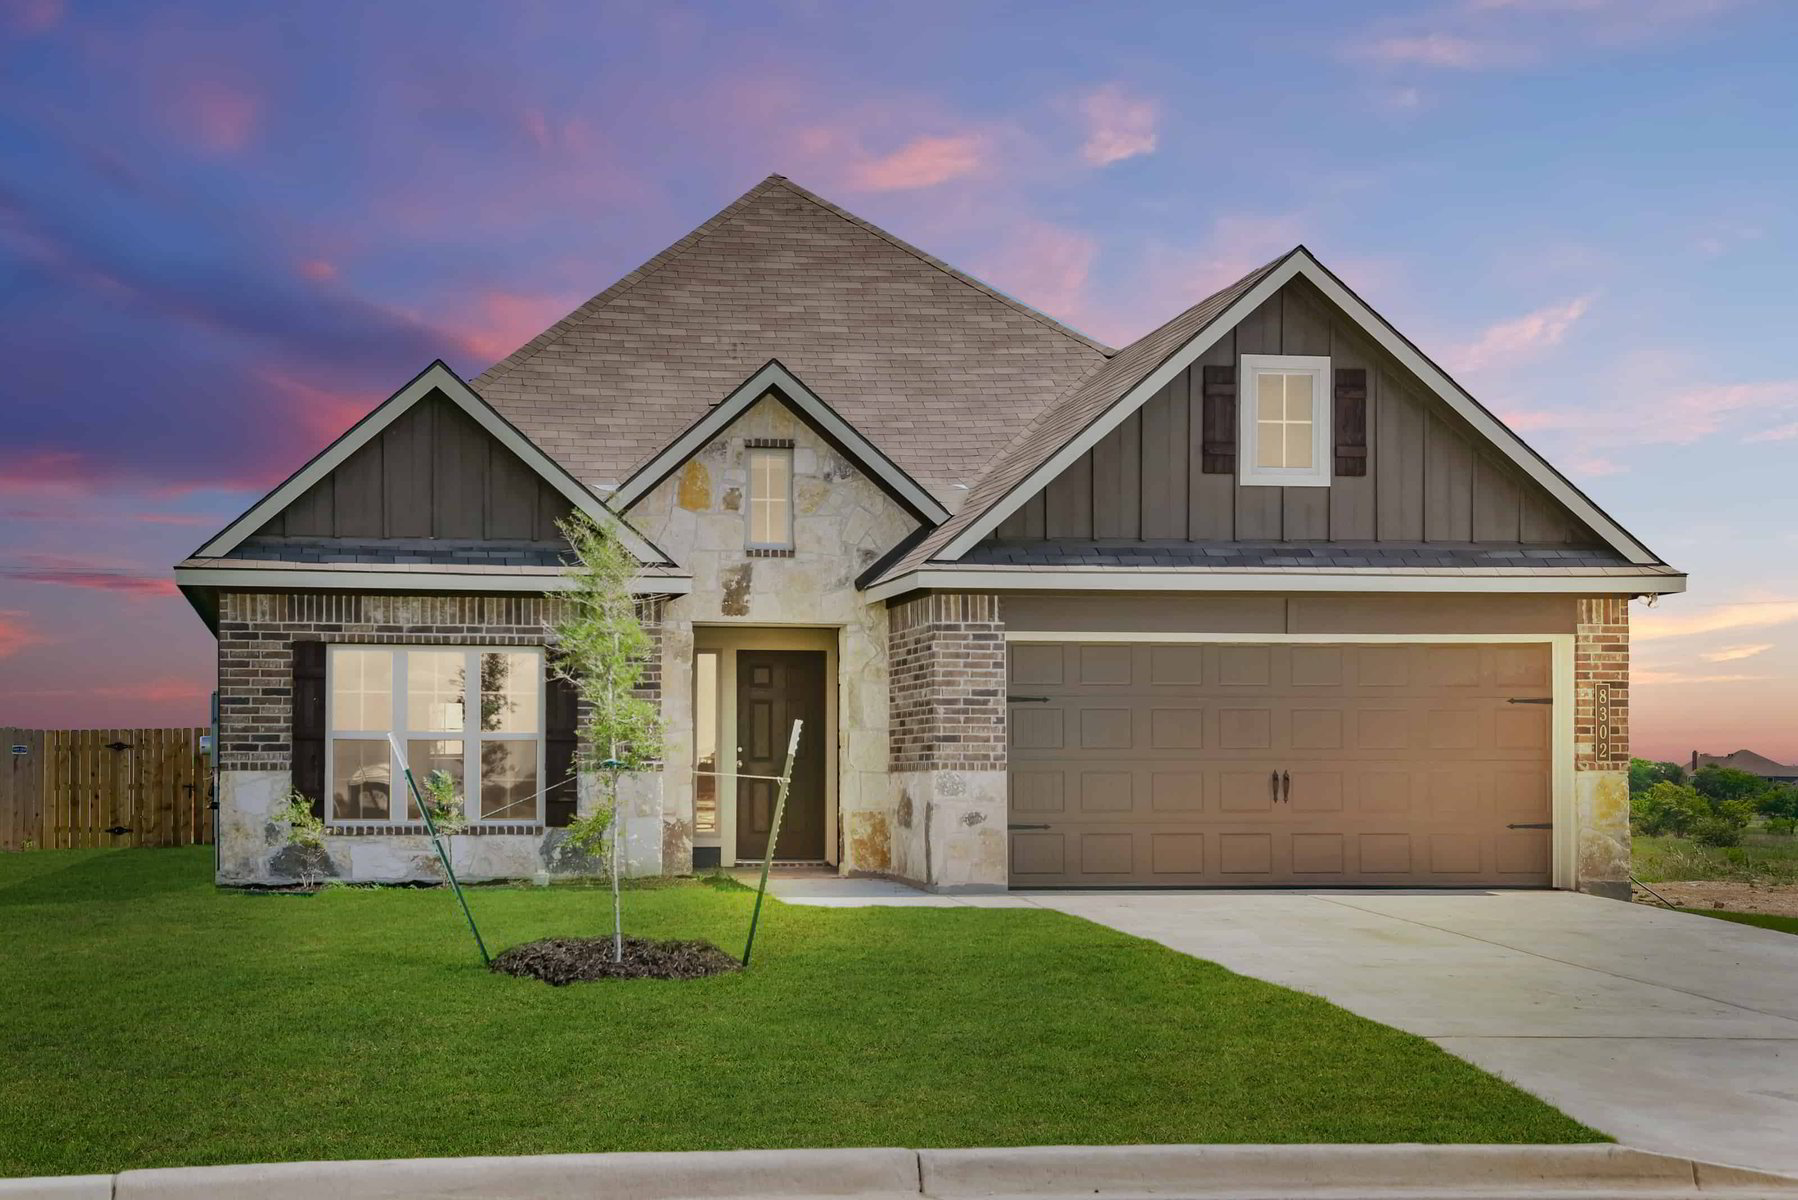 This is a Stylecraft Builders model home exterior image for their new homes in Southern Pointe near College Station, TX.